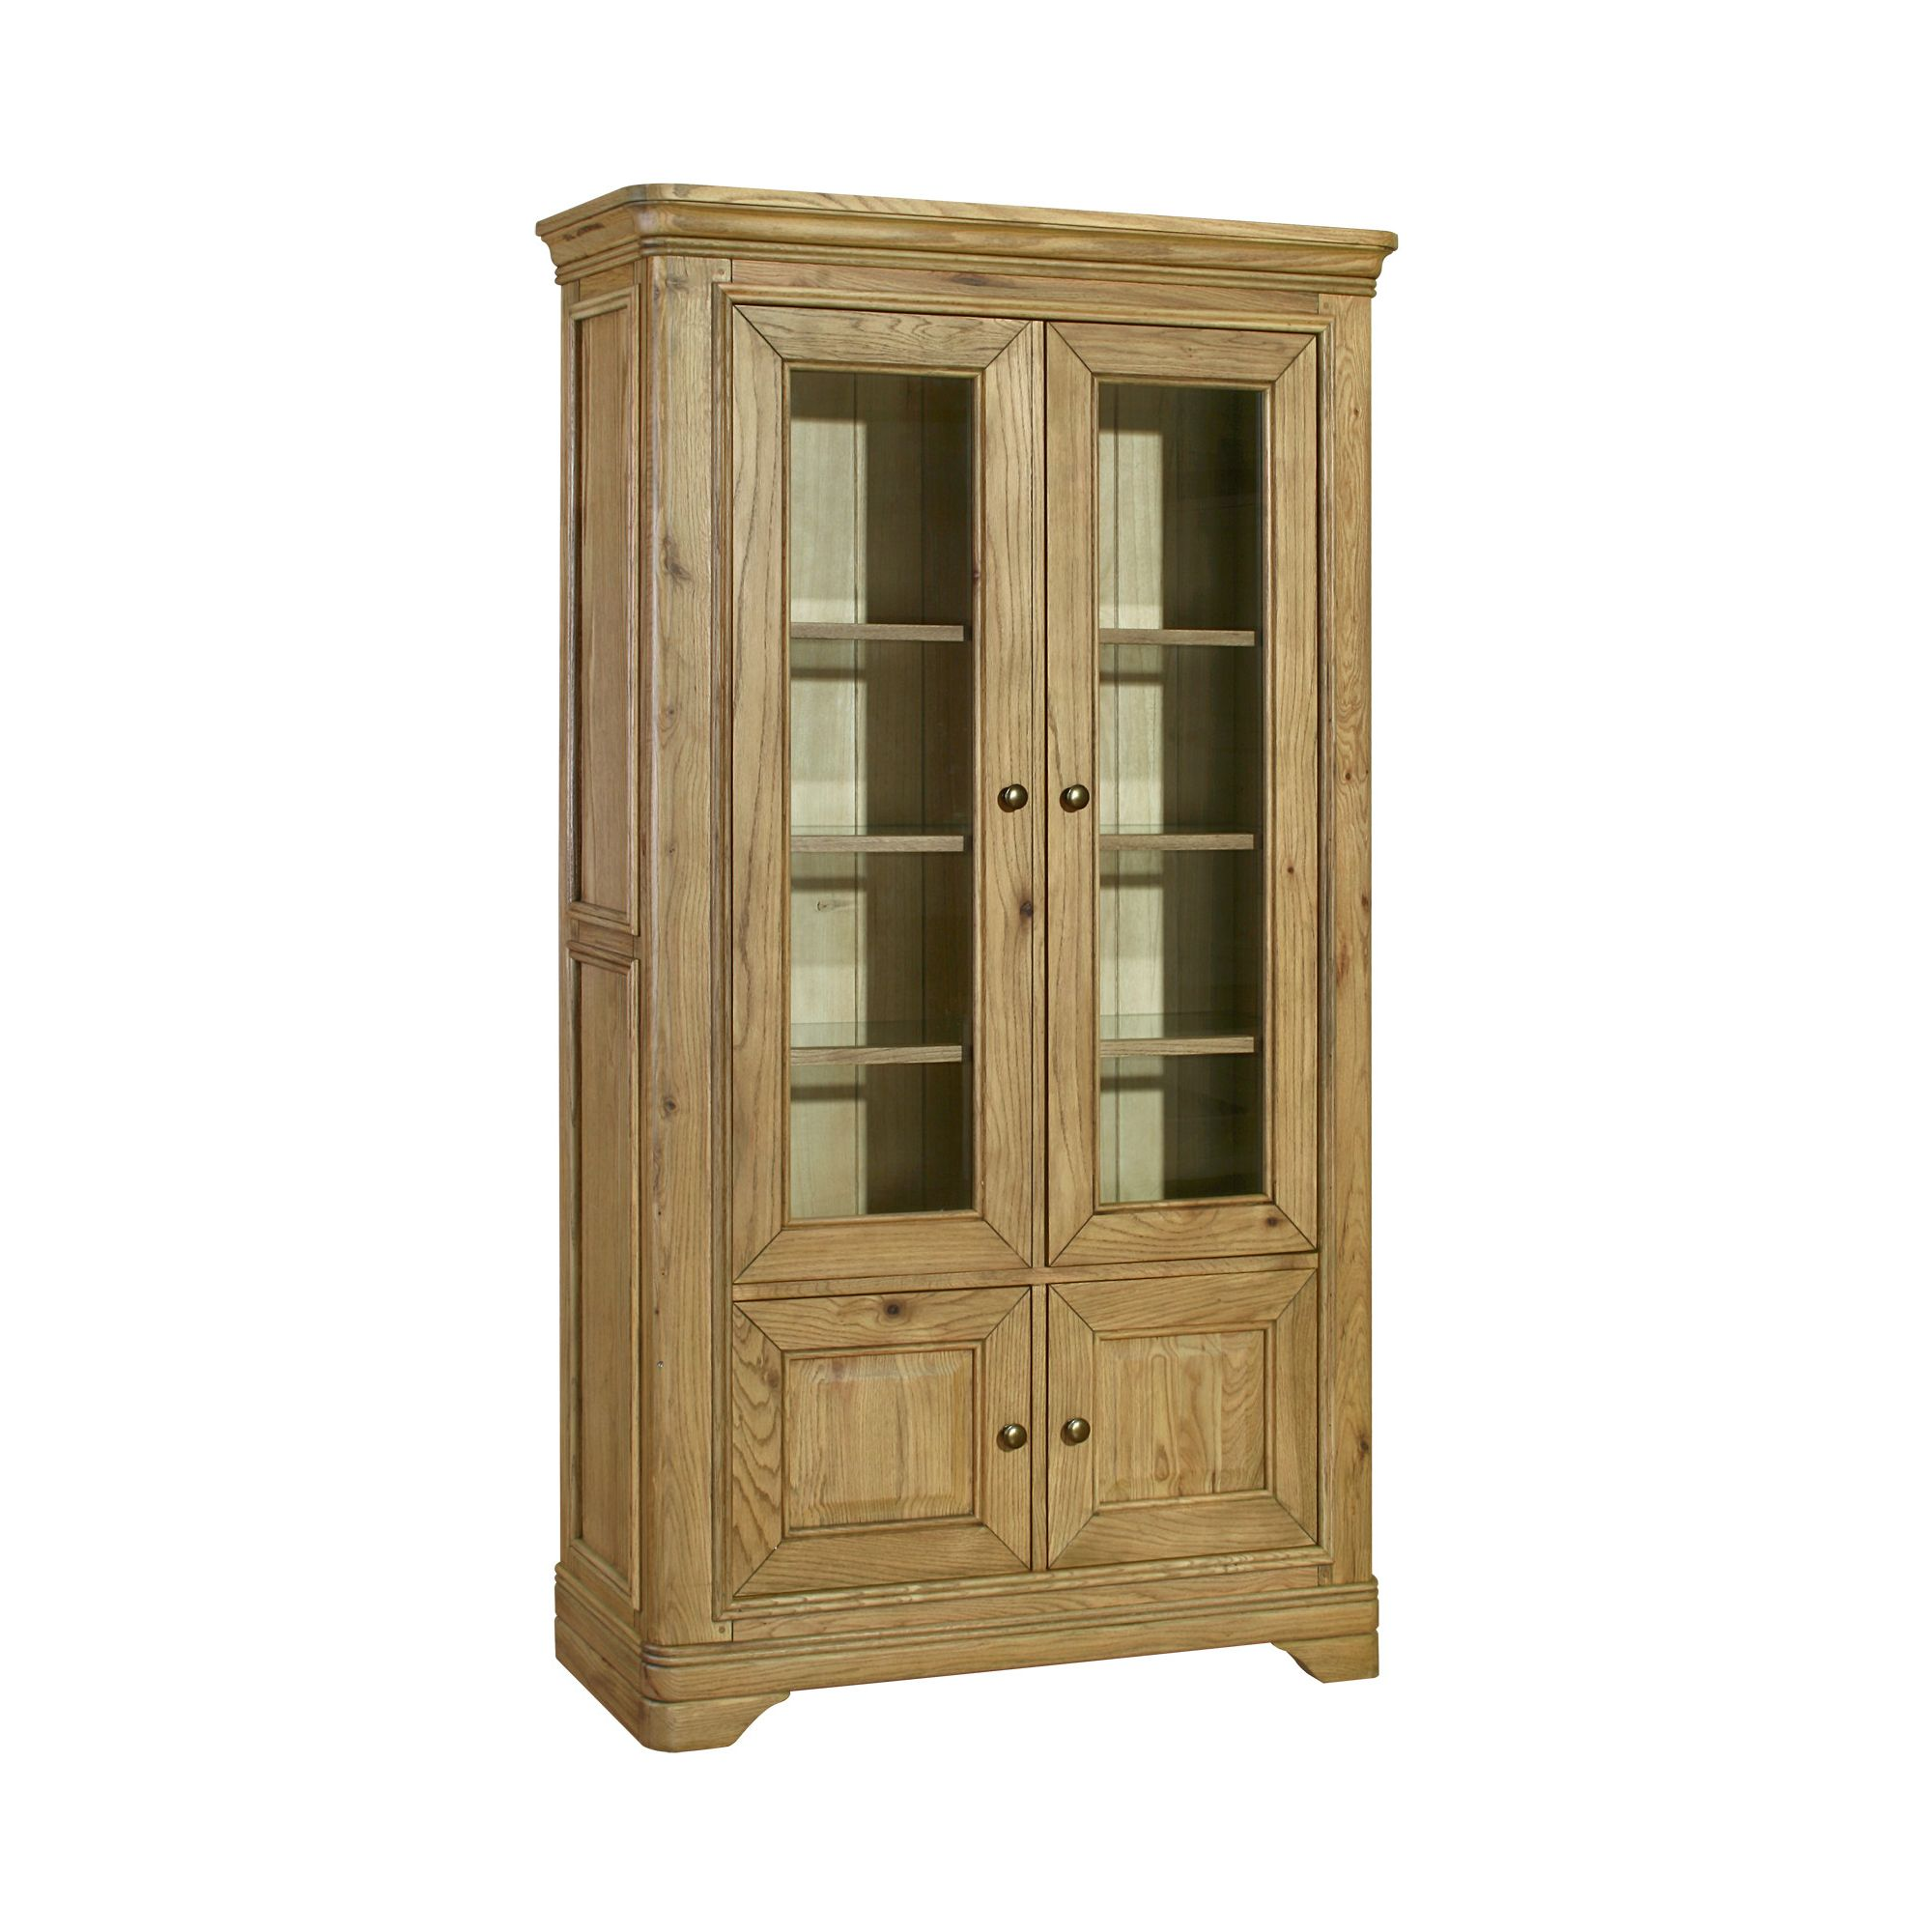 Kelburn Furniture Loire Display Cabinet in Light Oak Stain and Satin Lacquer at Tesco Direct